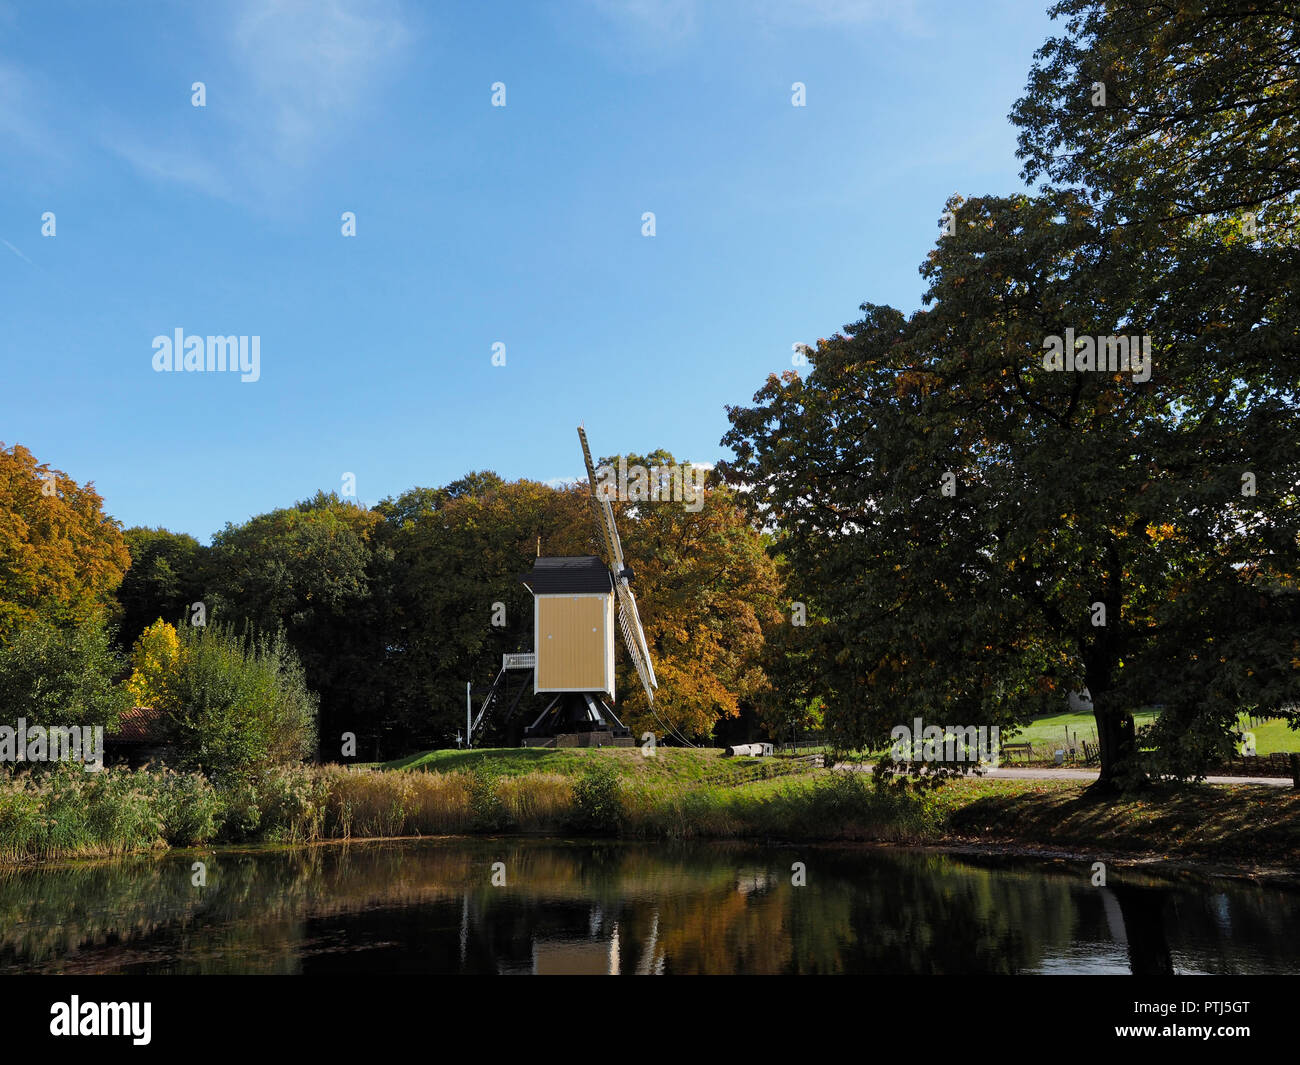 Old Dutch windmill of a specific type that is standing on a frame so the whole windmill can rotate photographed in the dutch open air museum in Arnhem - Stock Image